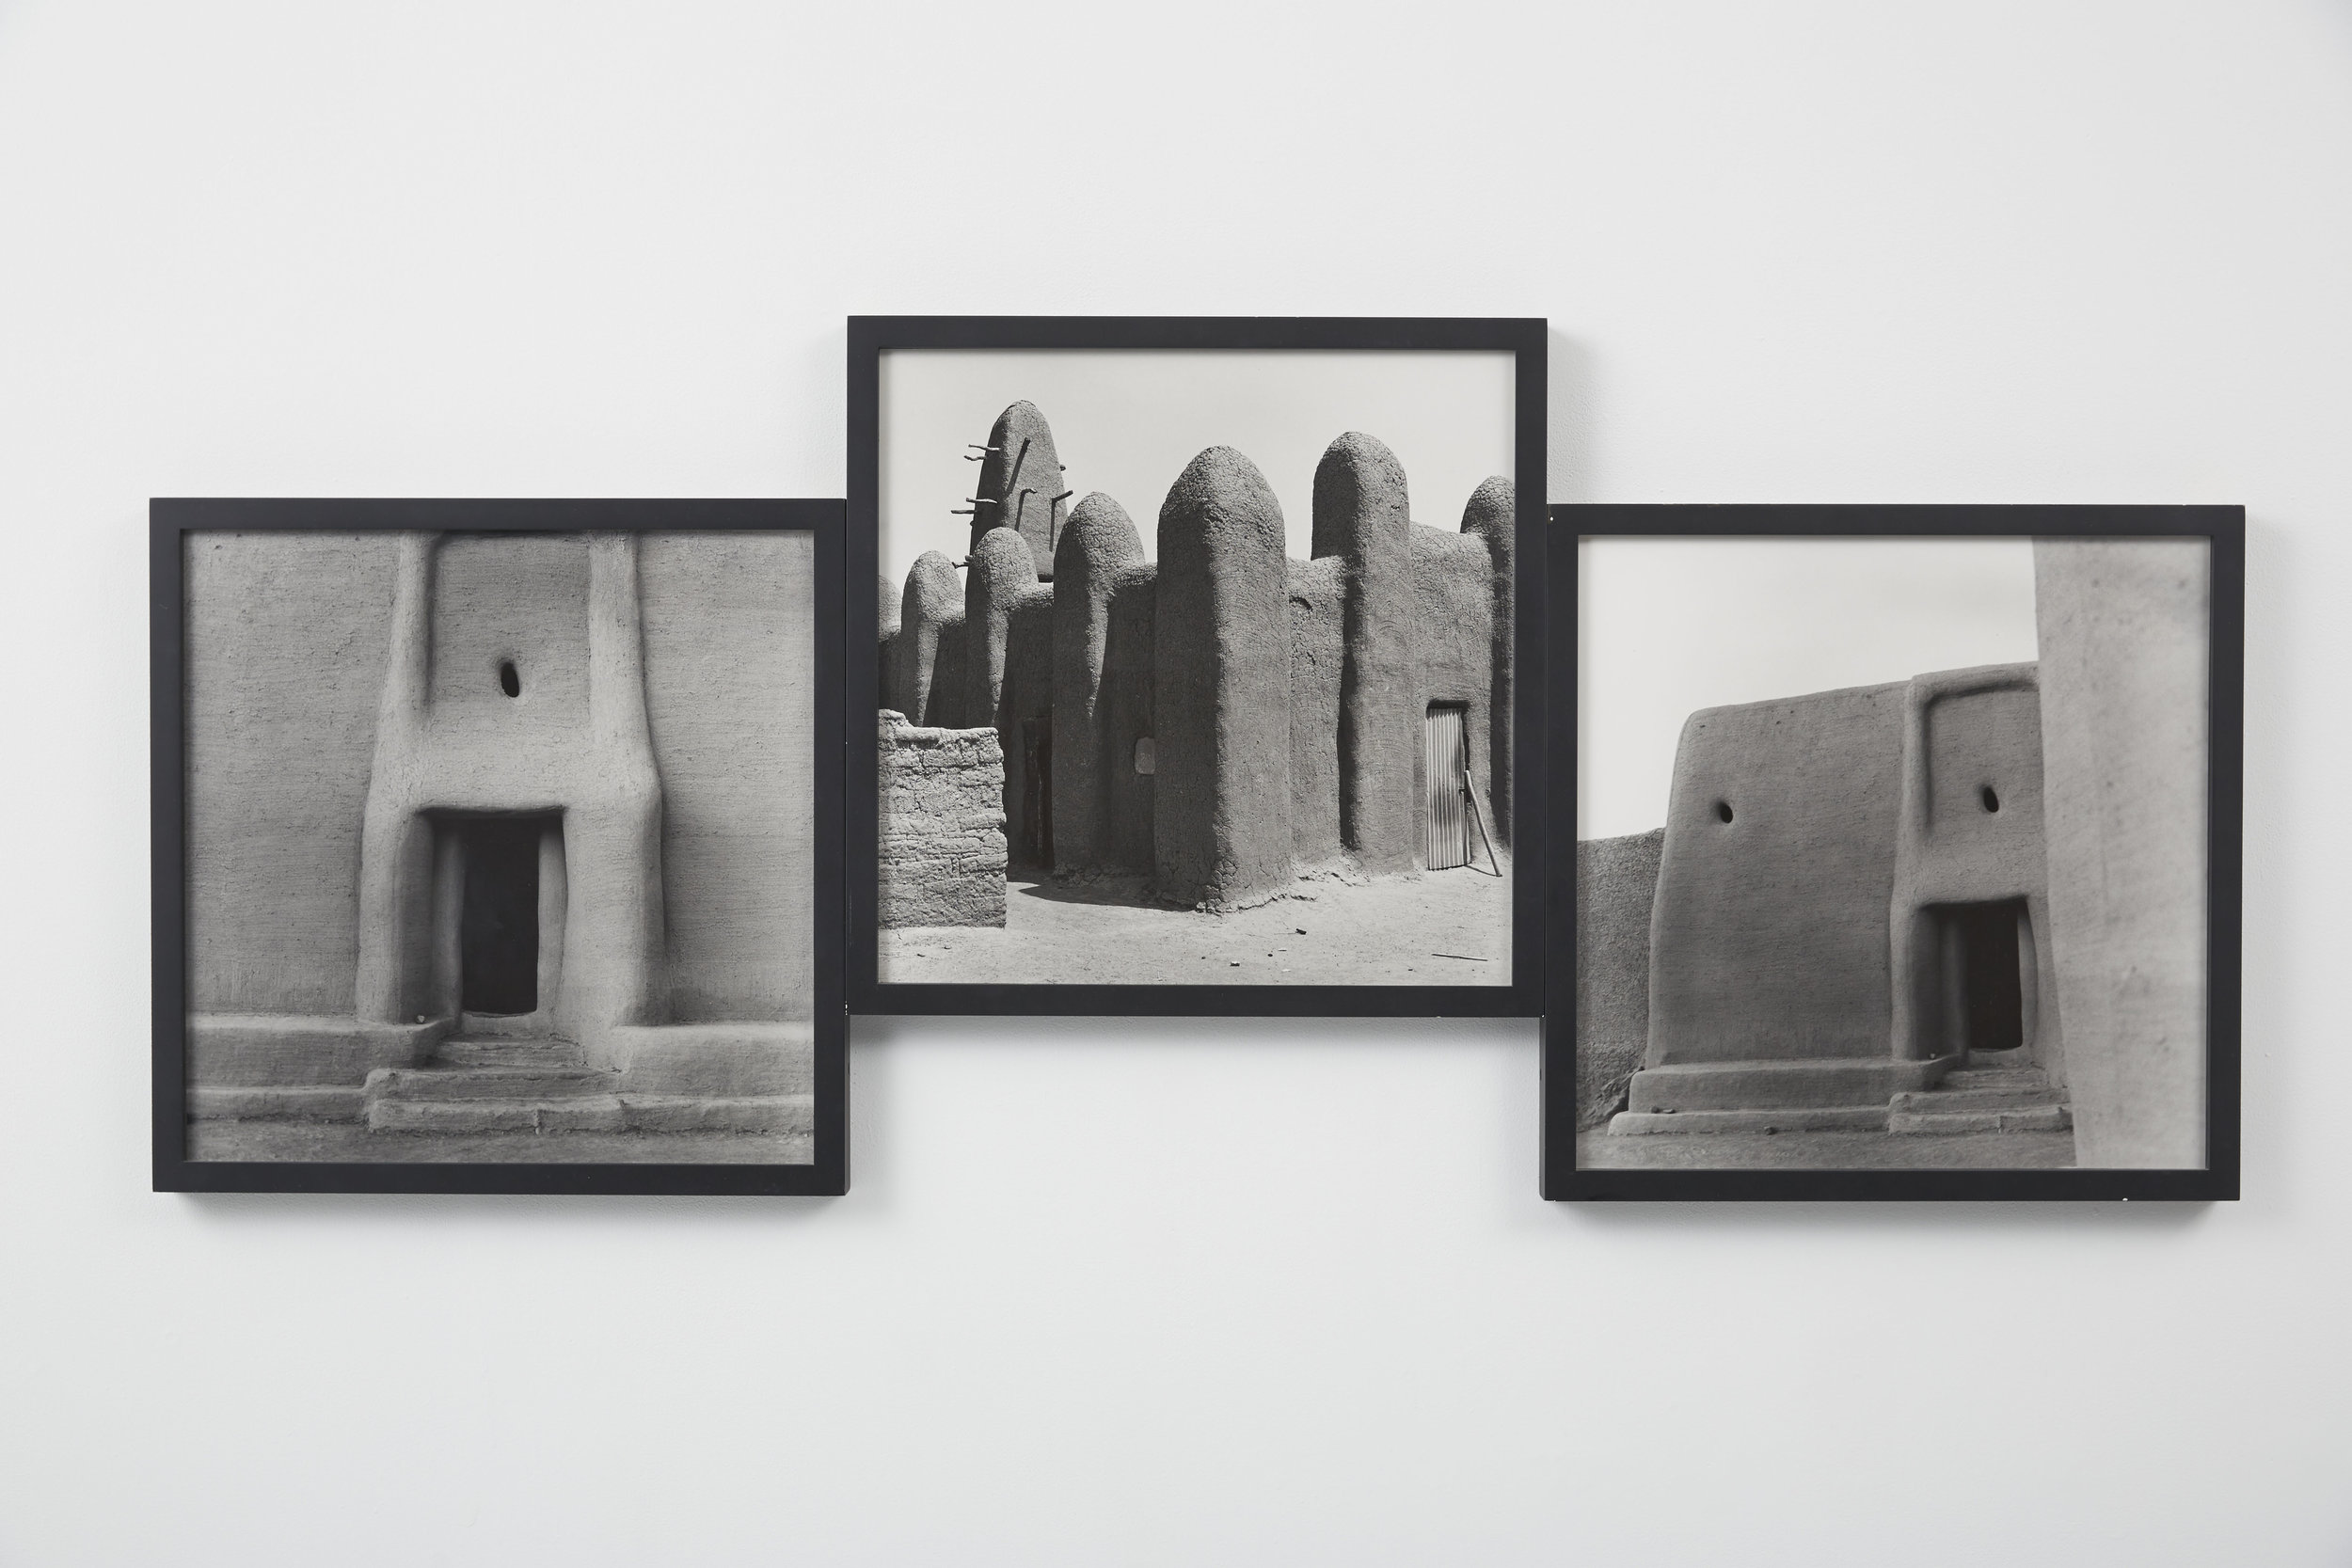 Carrie Mae Weems:  The Shape of Things ,   from the series  Africa , 1993; photogravure, triptych; 32 x 62 in.; BAMPFA, gift of Sandra J. Springs in constant memory of Marian C. Chapman.  ©  Carrie Mae Weems. Courtesy of the artist and Jack Shainman Gallery, New York.